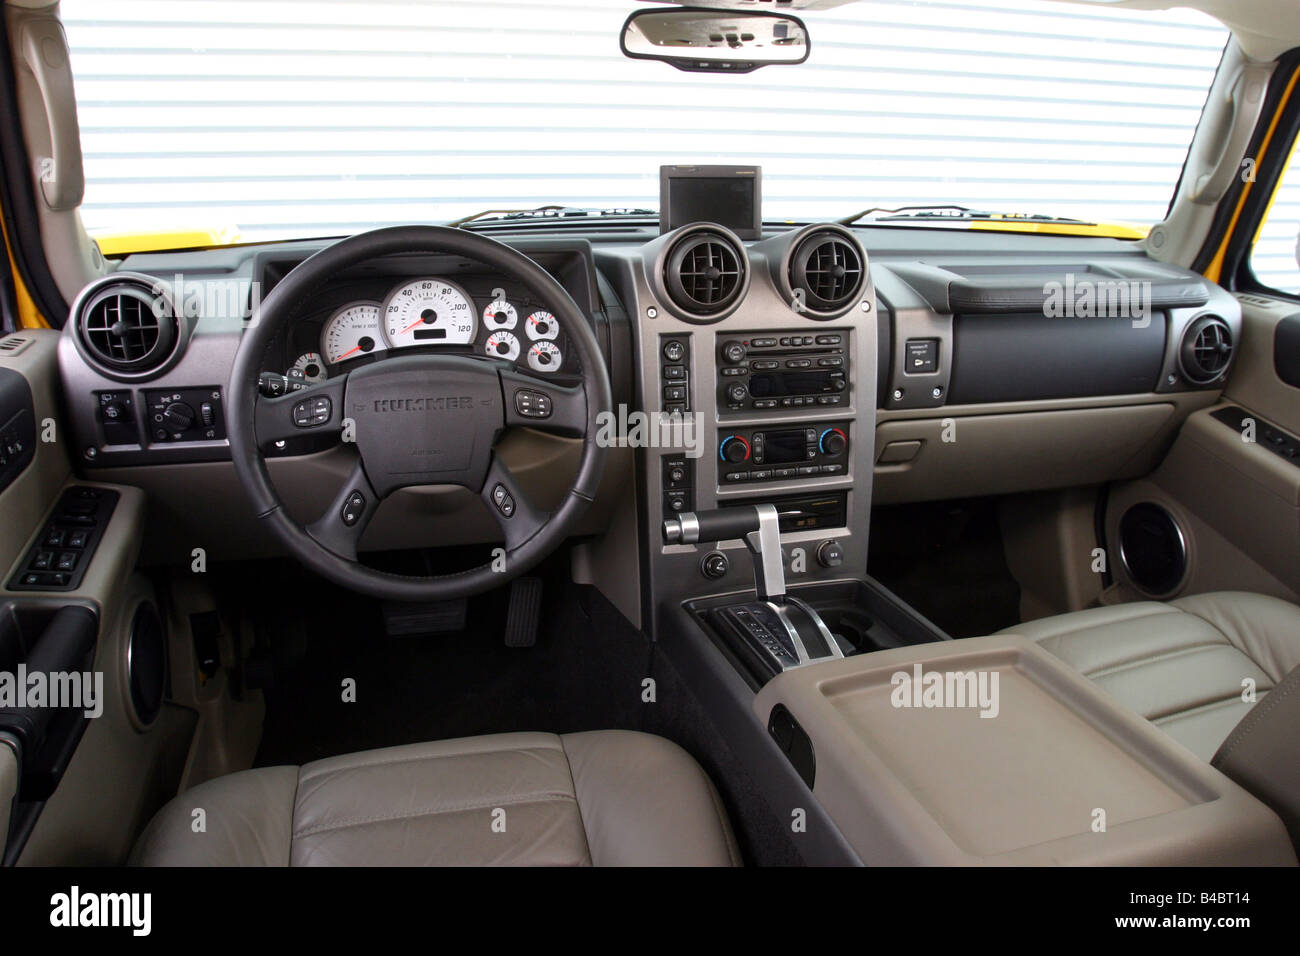 Car Chevrolet Hummer H2 Cross Country Vehicle Model Year 2001 Stock Photo Royalty Free Image